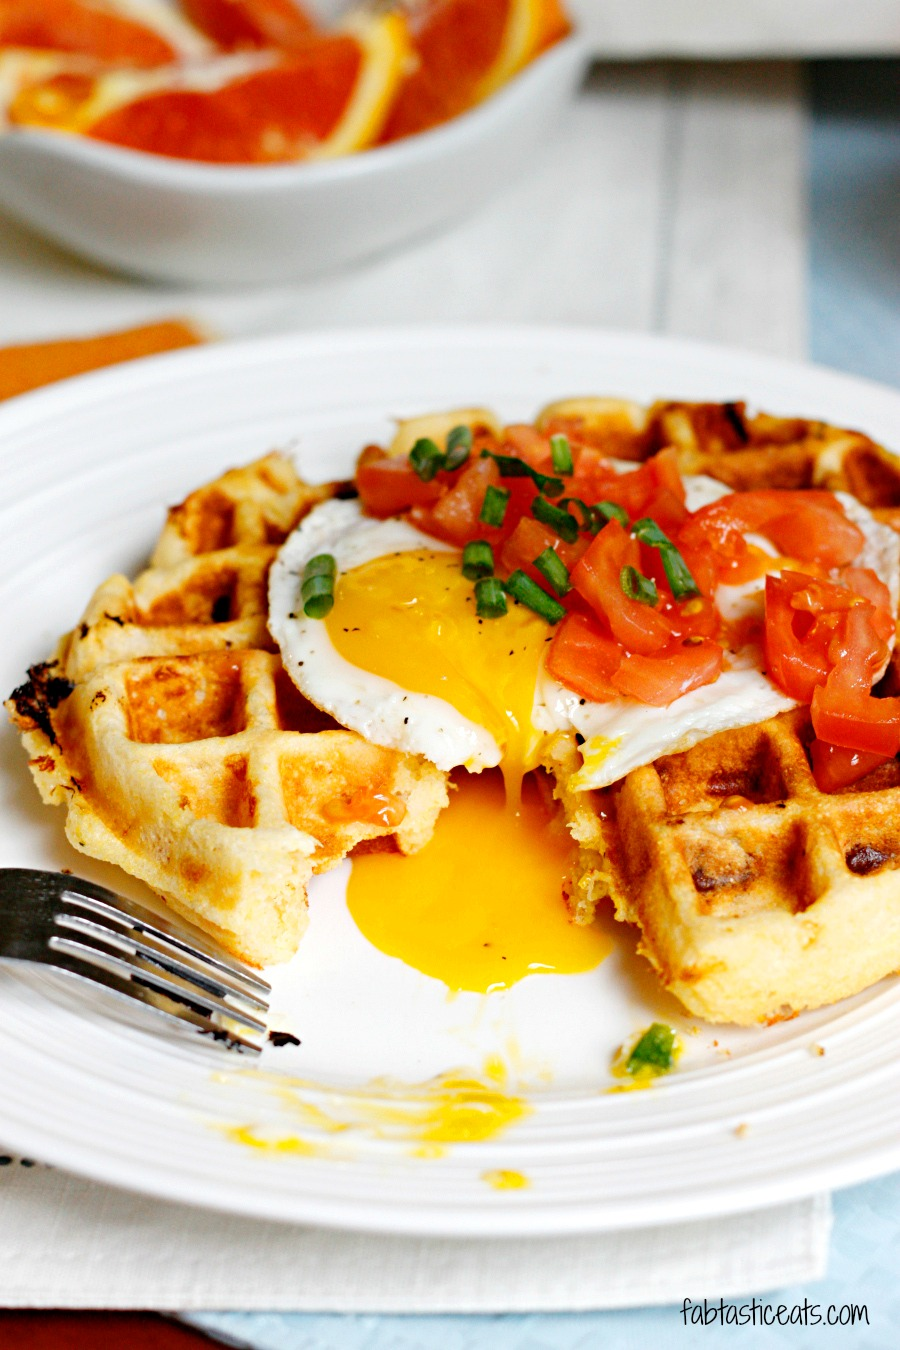 ... chicken and waffle perfect blt sandwich savory cheddar waffle blt with